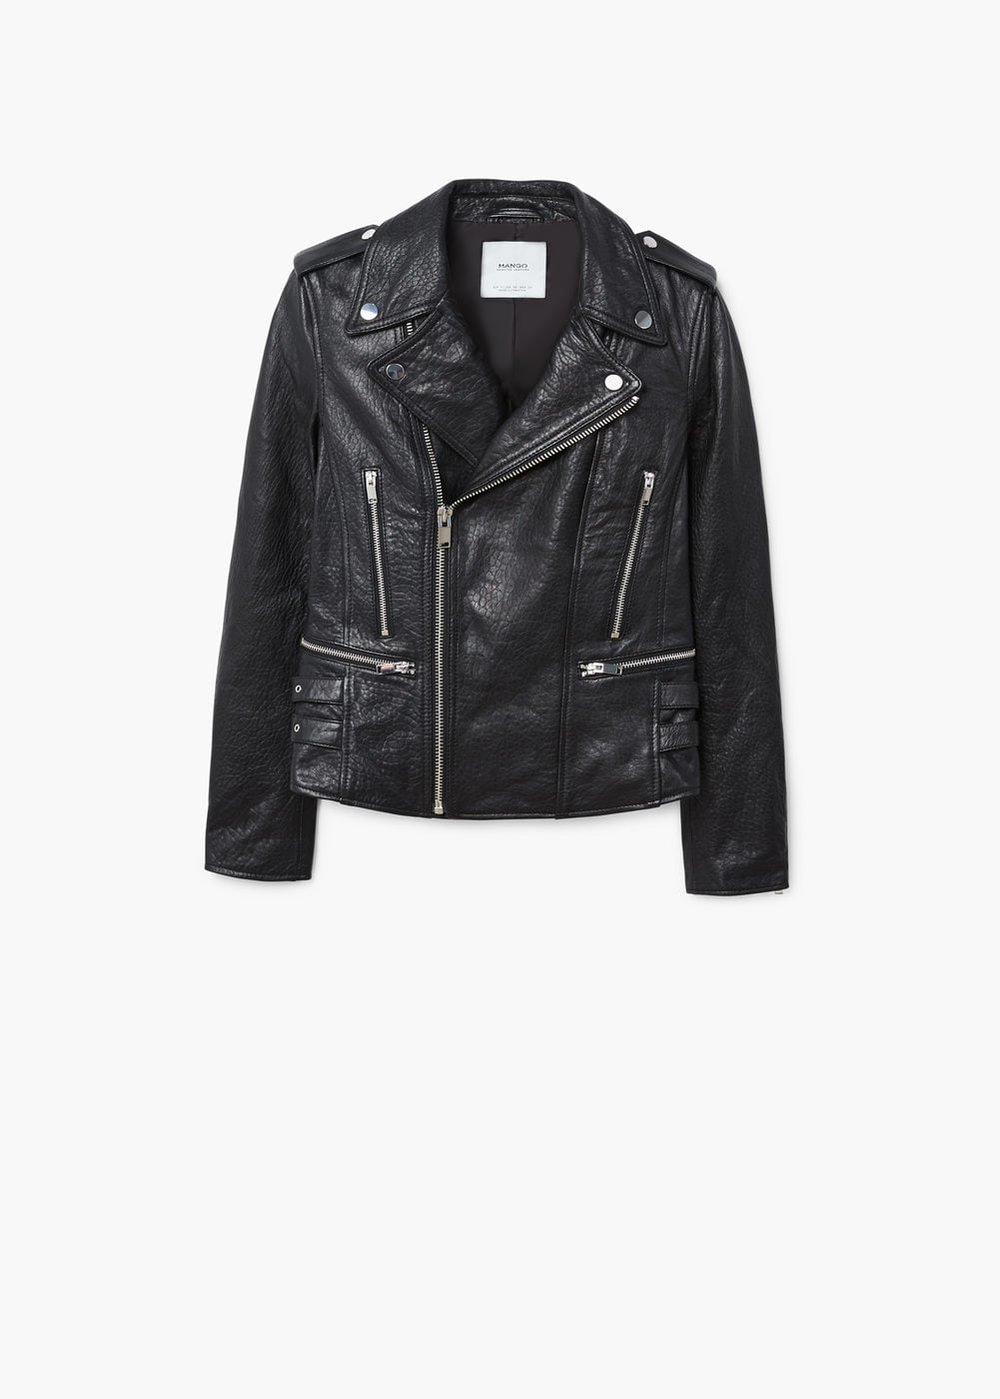 i am in the market for a black leather jacket. you can wear a black jacket over an evening dress, (teamed with a faux fur scarf - perfect for fall / early spring), and just as easily with denim or any daywear.